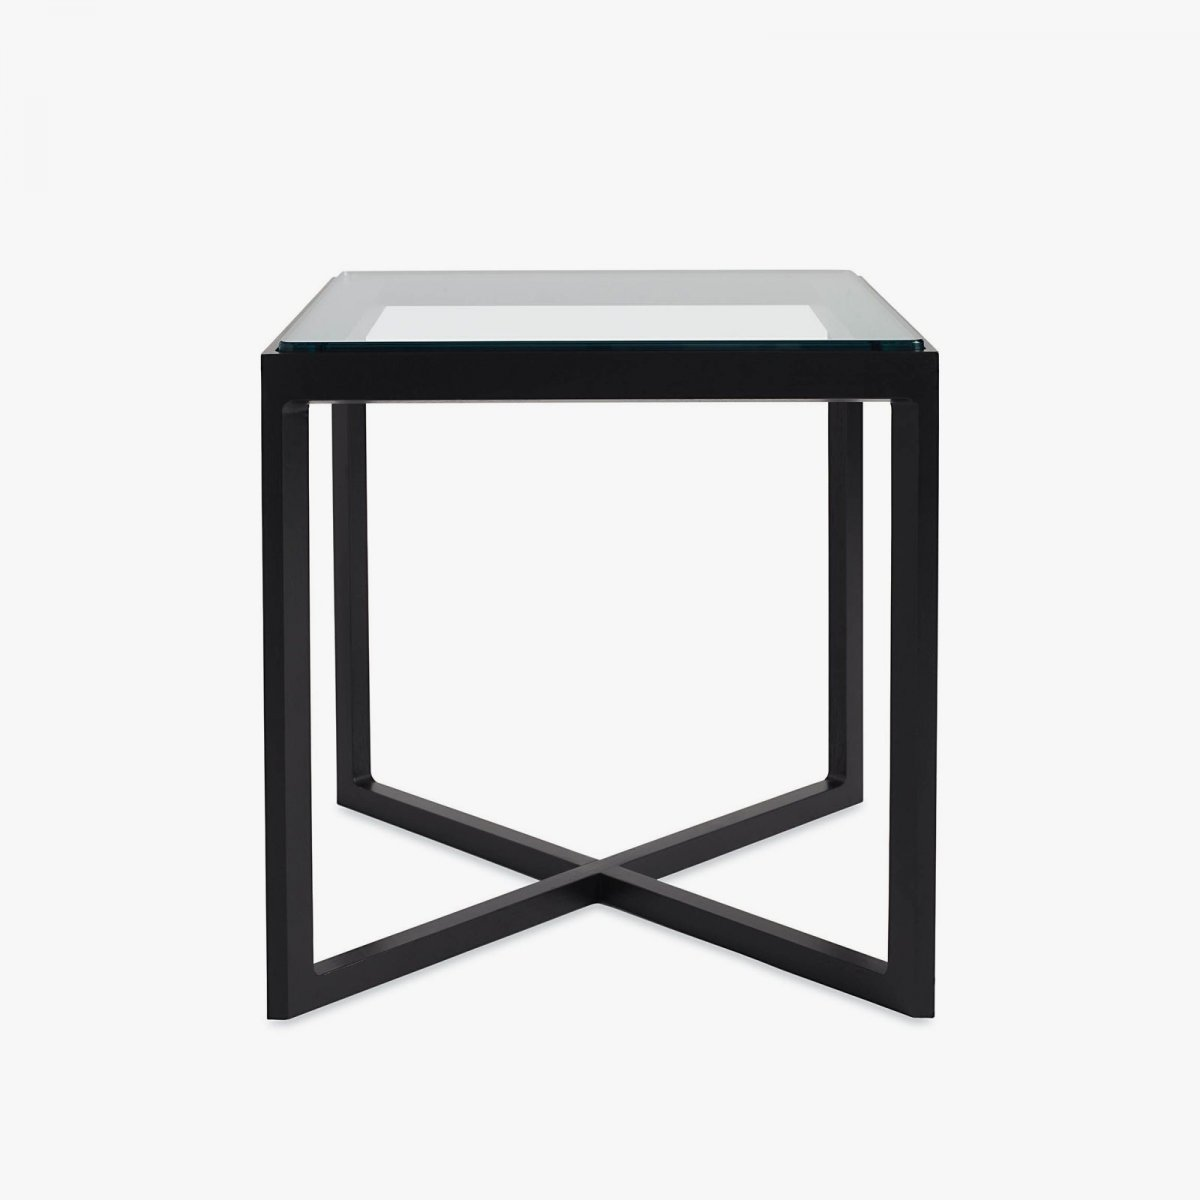 Krusin Side Table, ebony + glass.